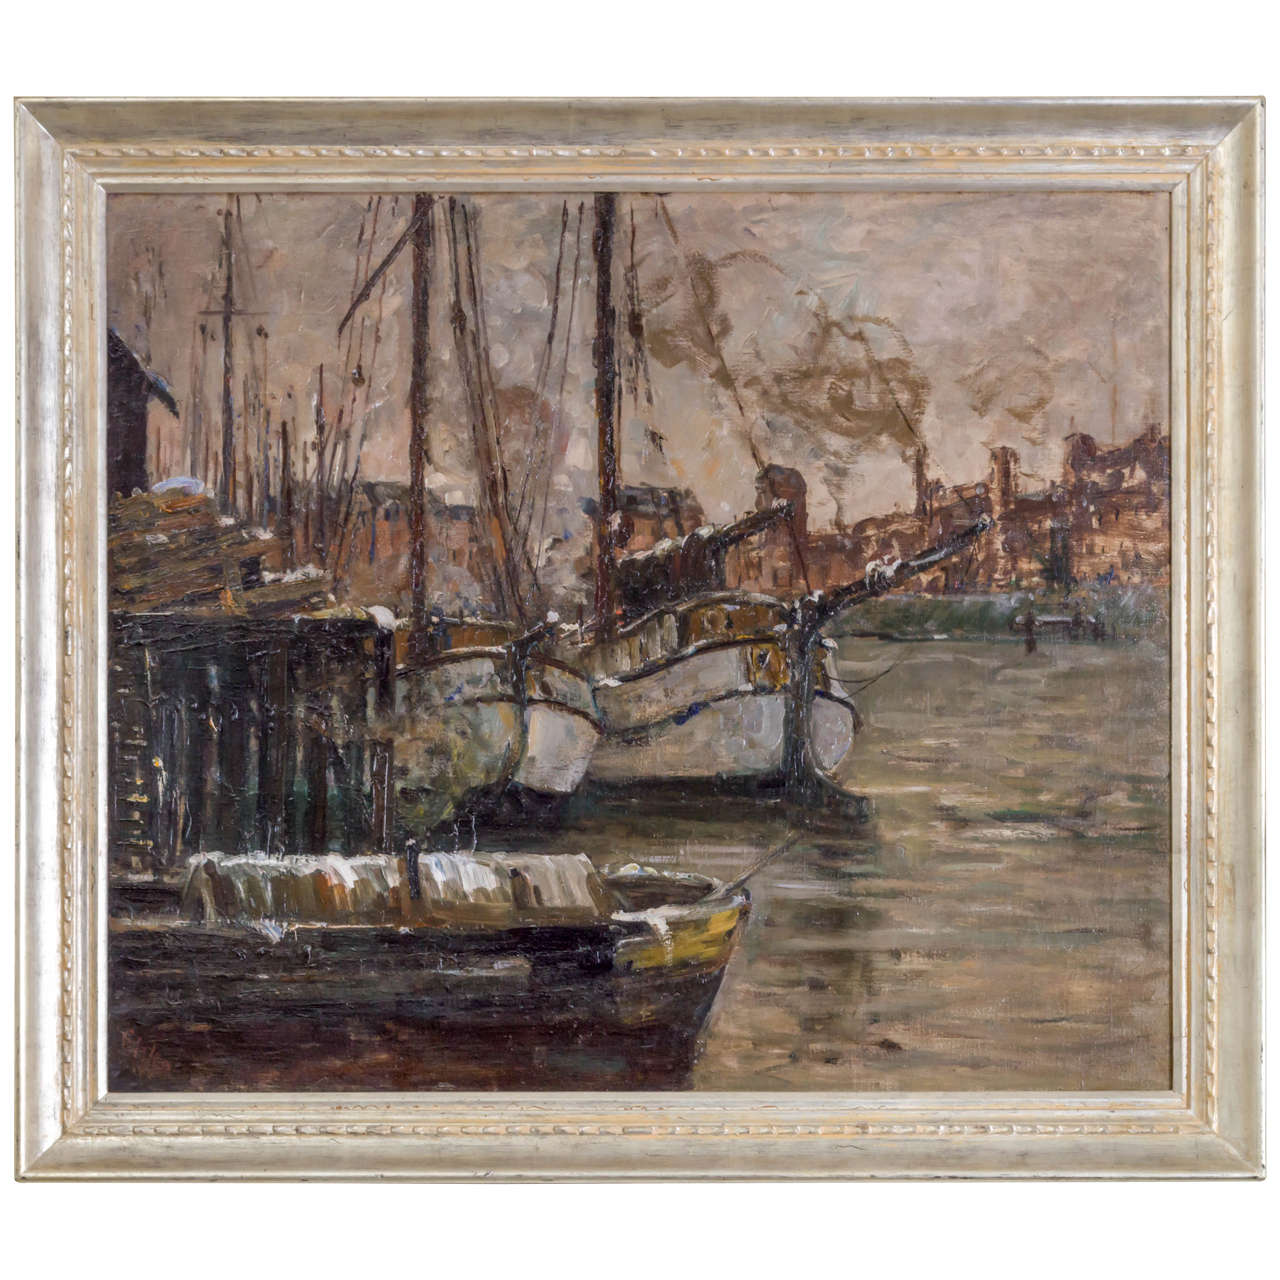 Oil on Canvas Painting of a Harbor Scene by German Artist Toni Magpie (Elster) 1